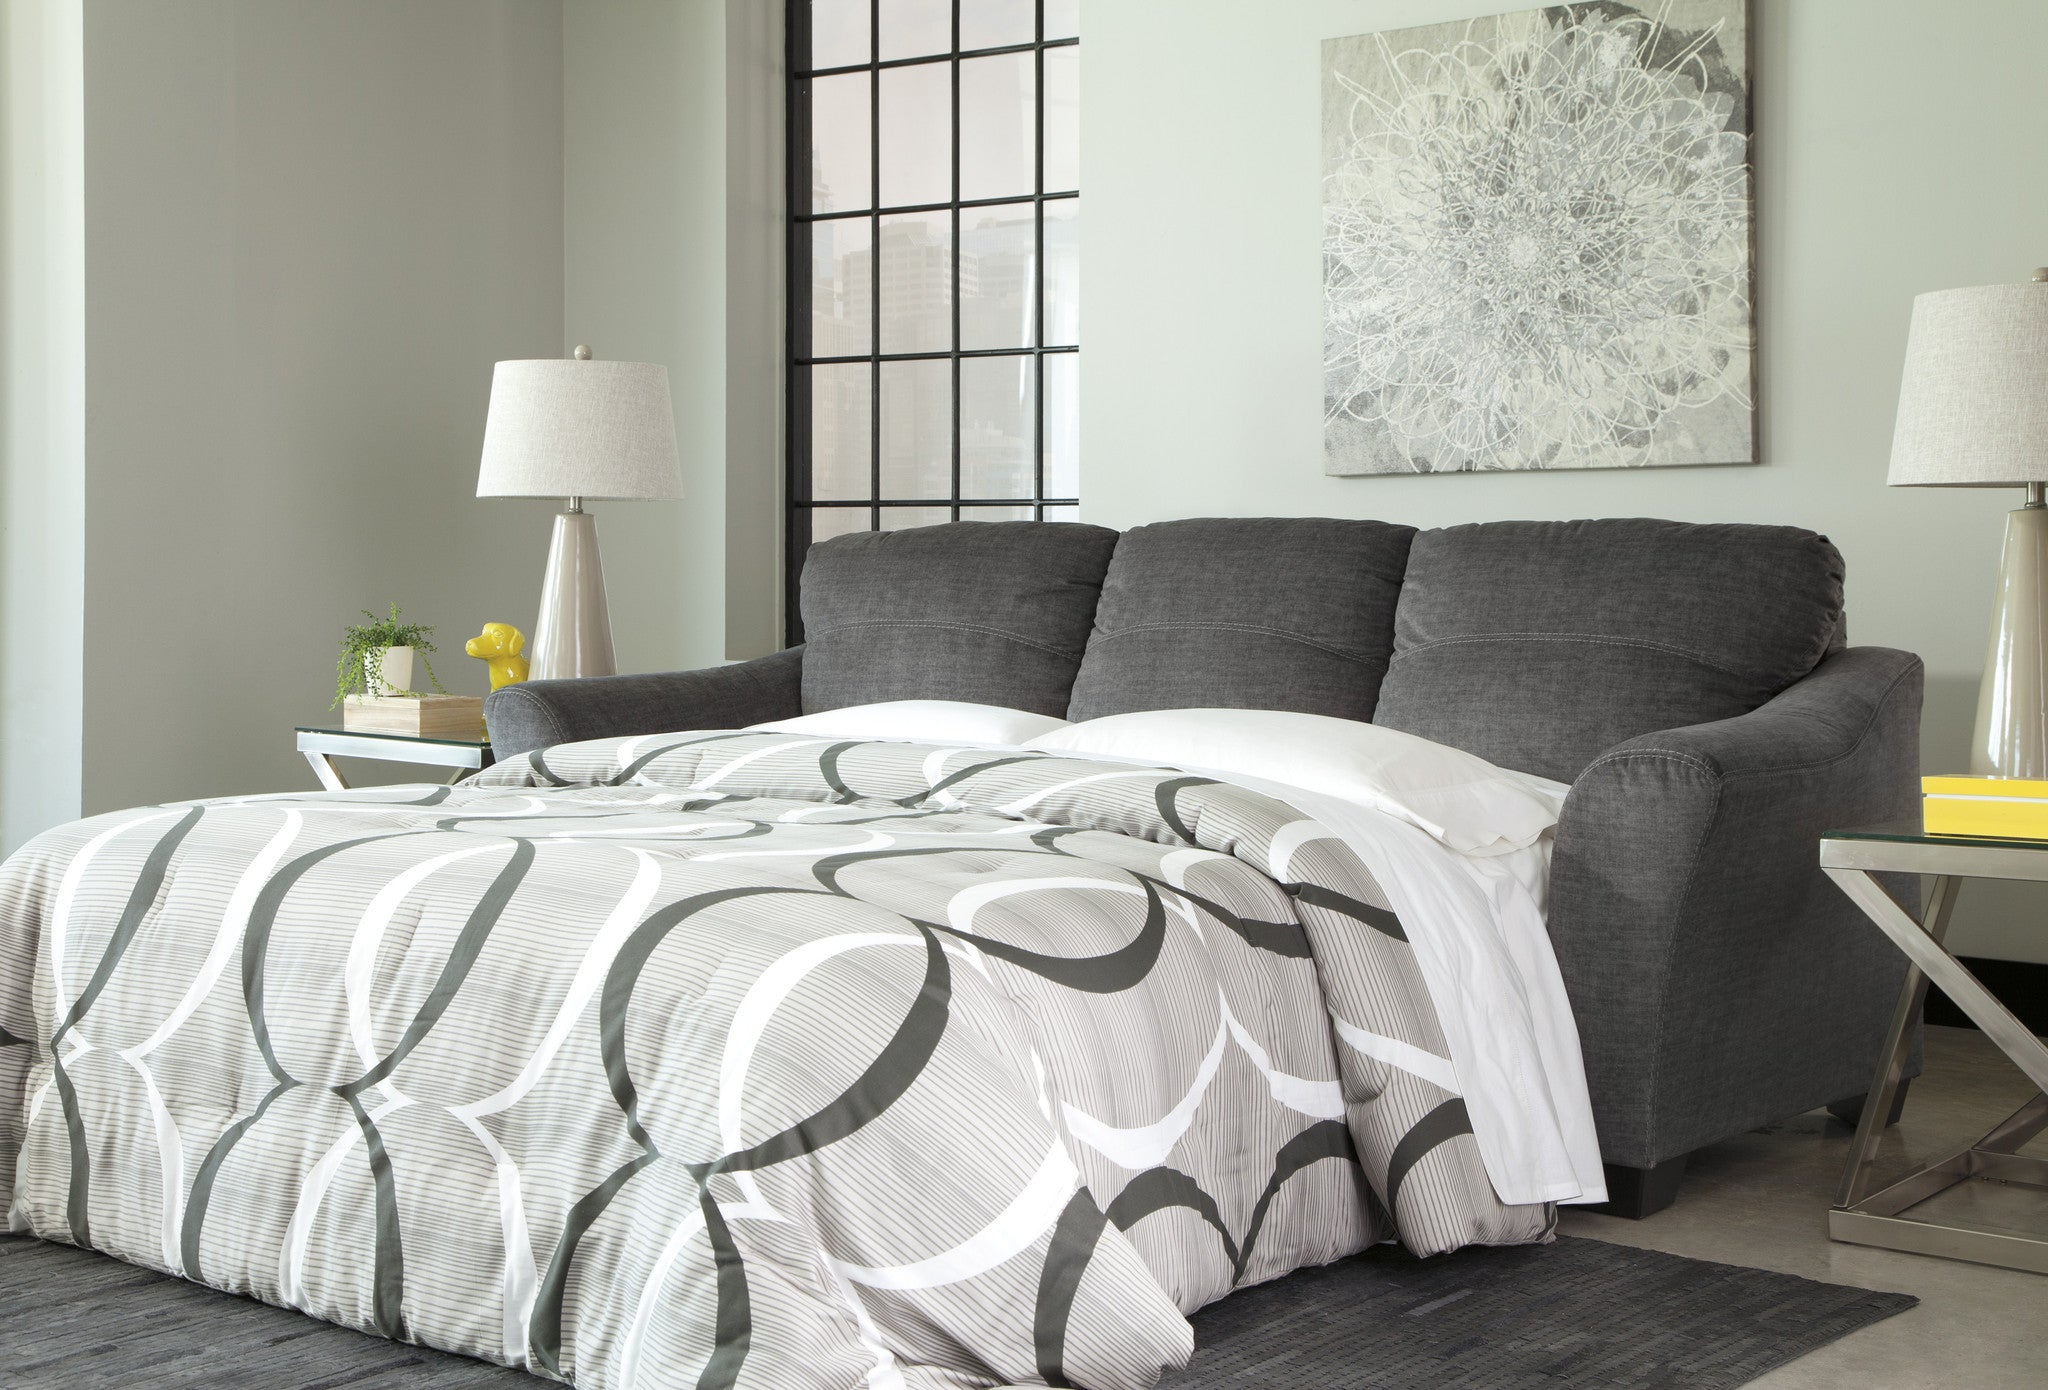 Phenomenal Braxlin Queen Chaise Sofa Bed Charcoal Onthecornerstone Fun Painted Chair Ideas Images Onthecornerstoneorg